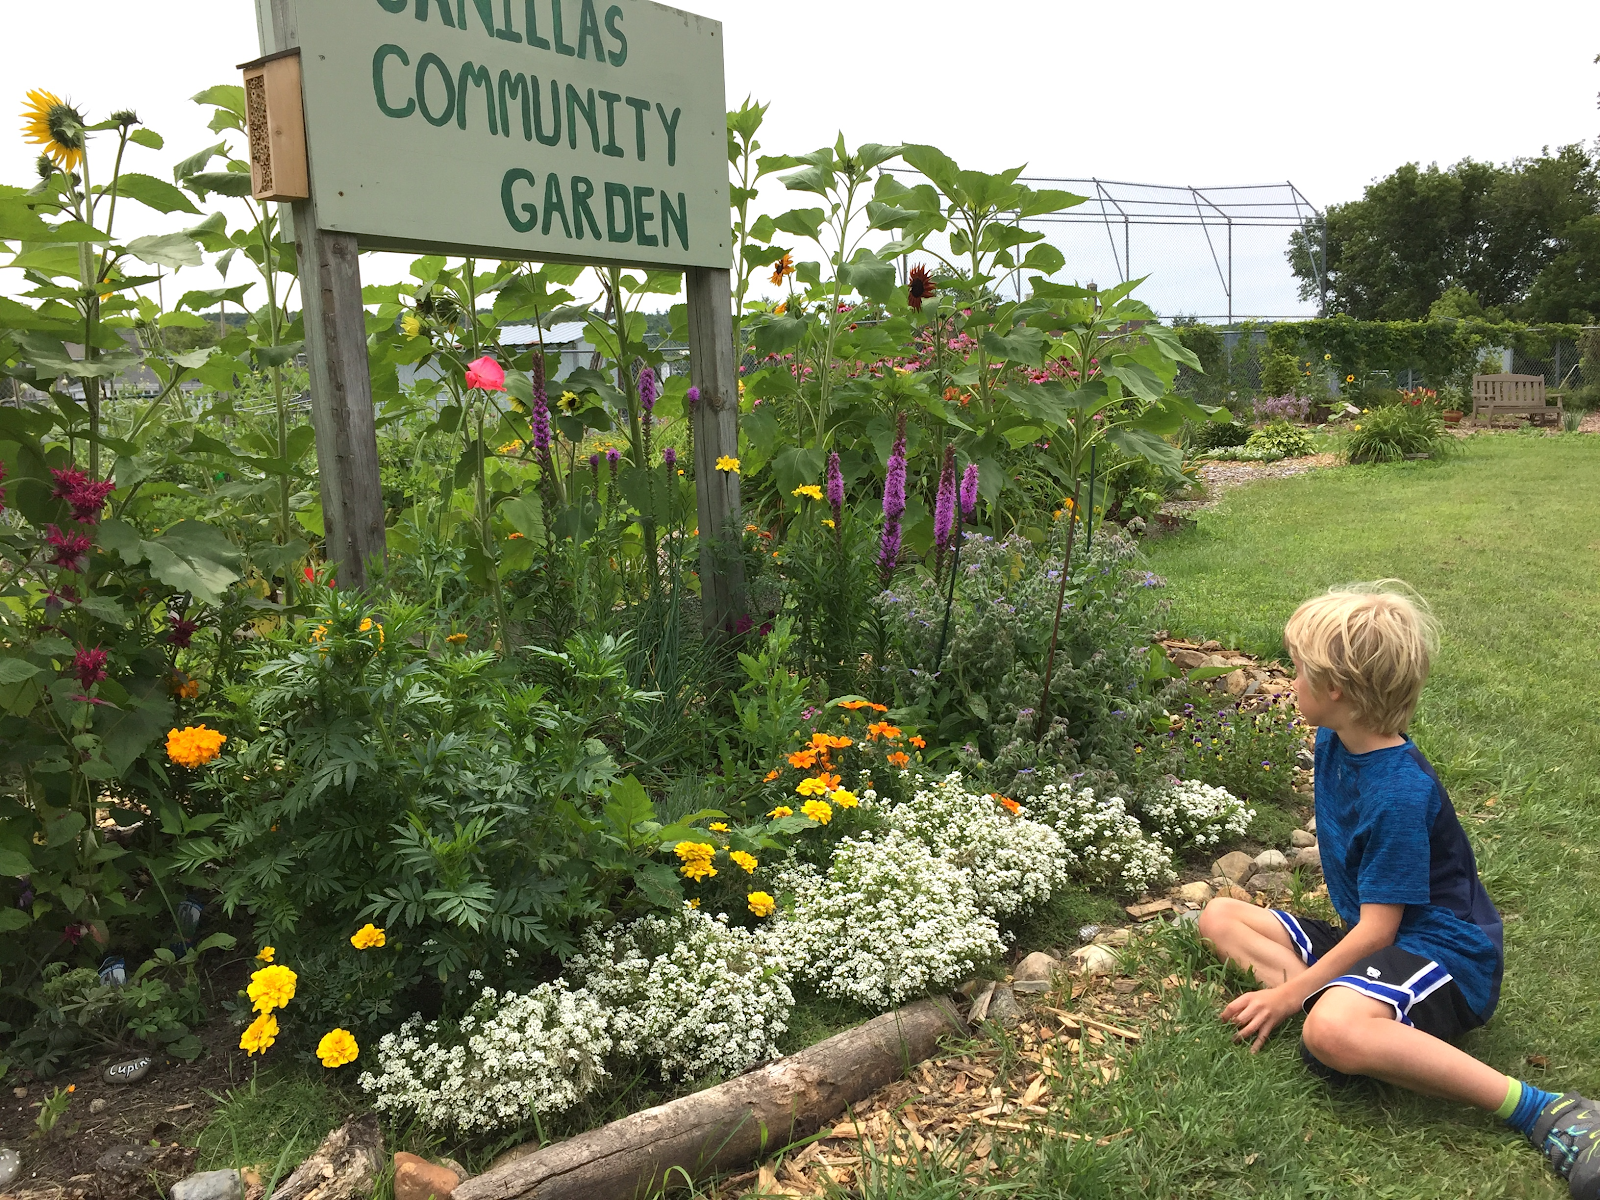 Child sitting in front of flowers at Canillas Community Garden